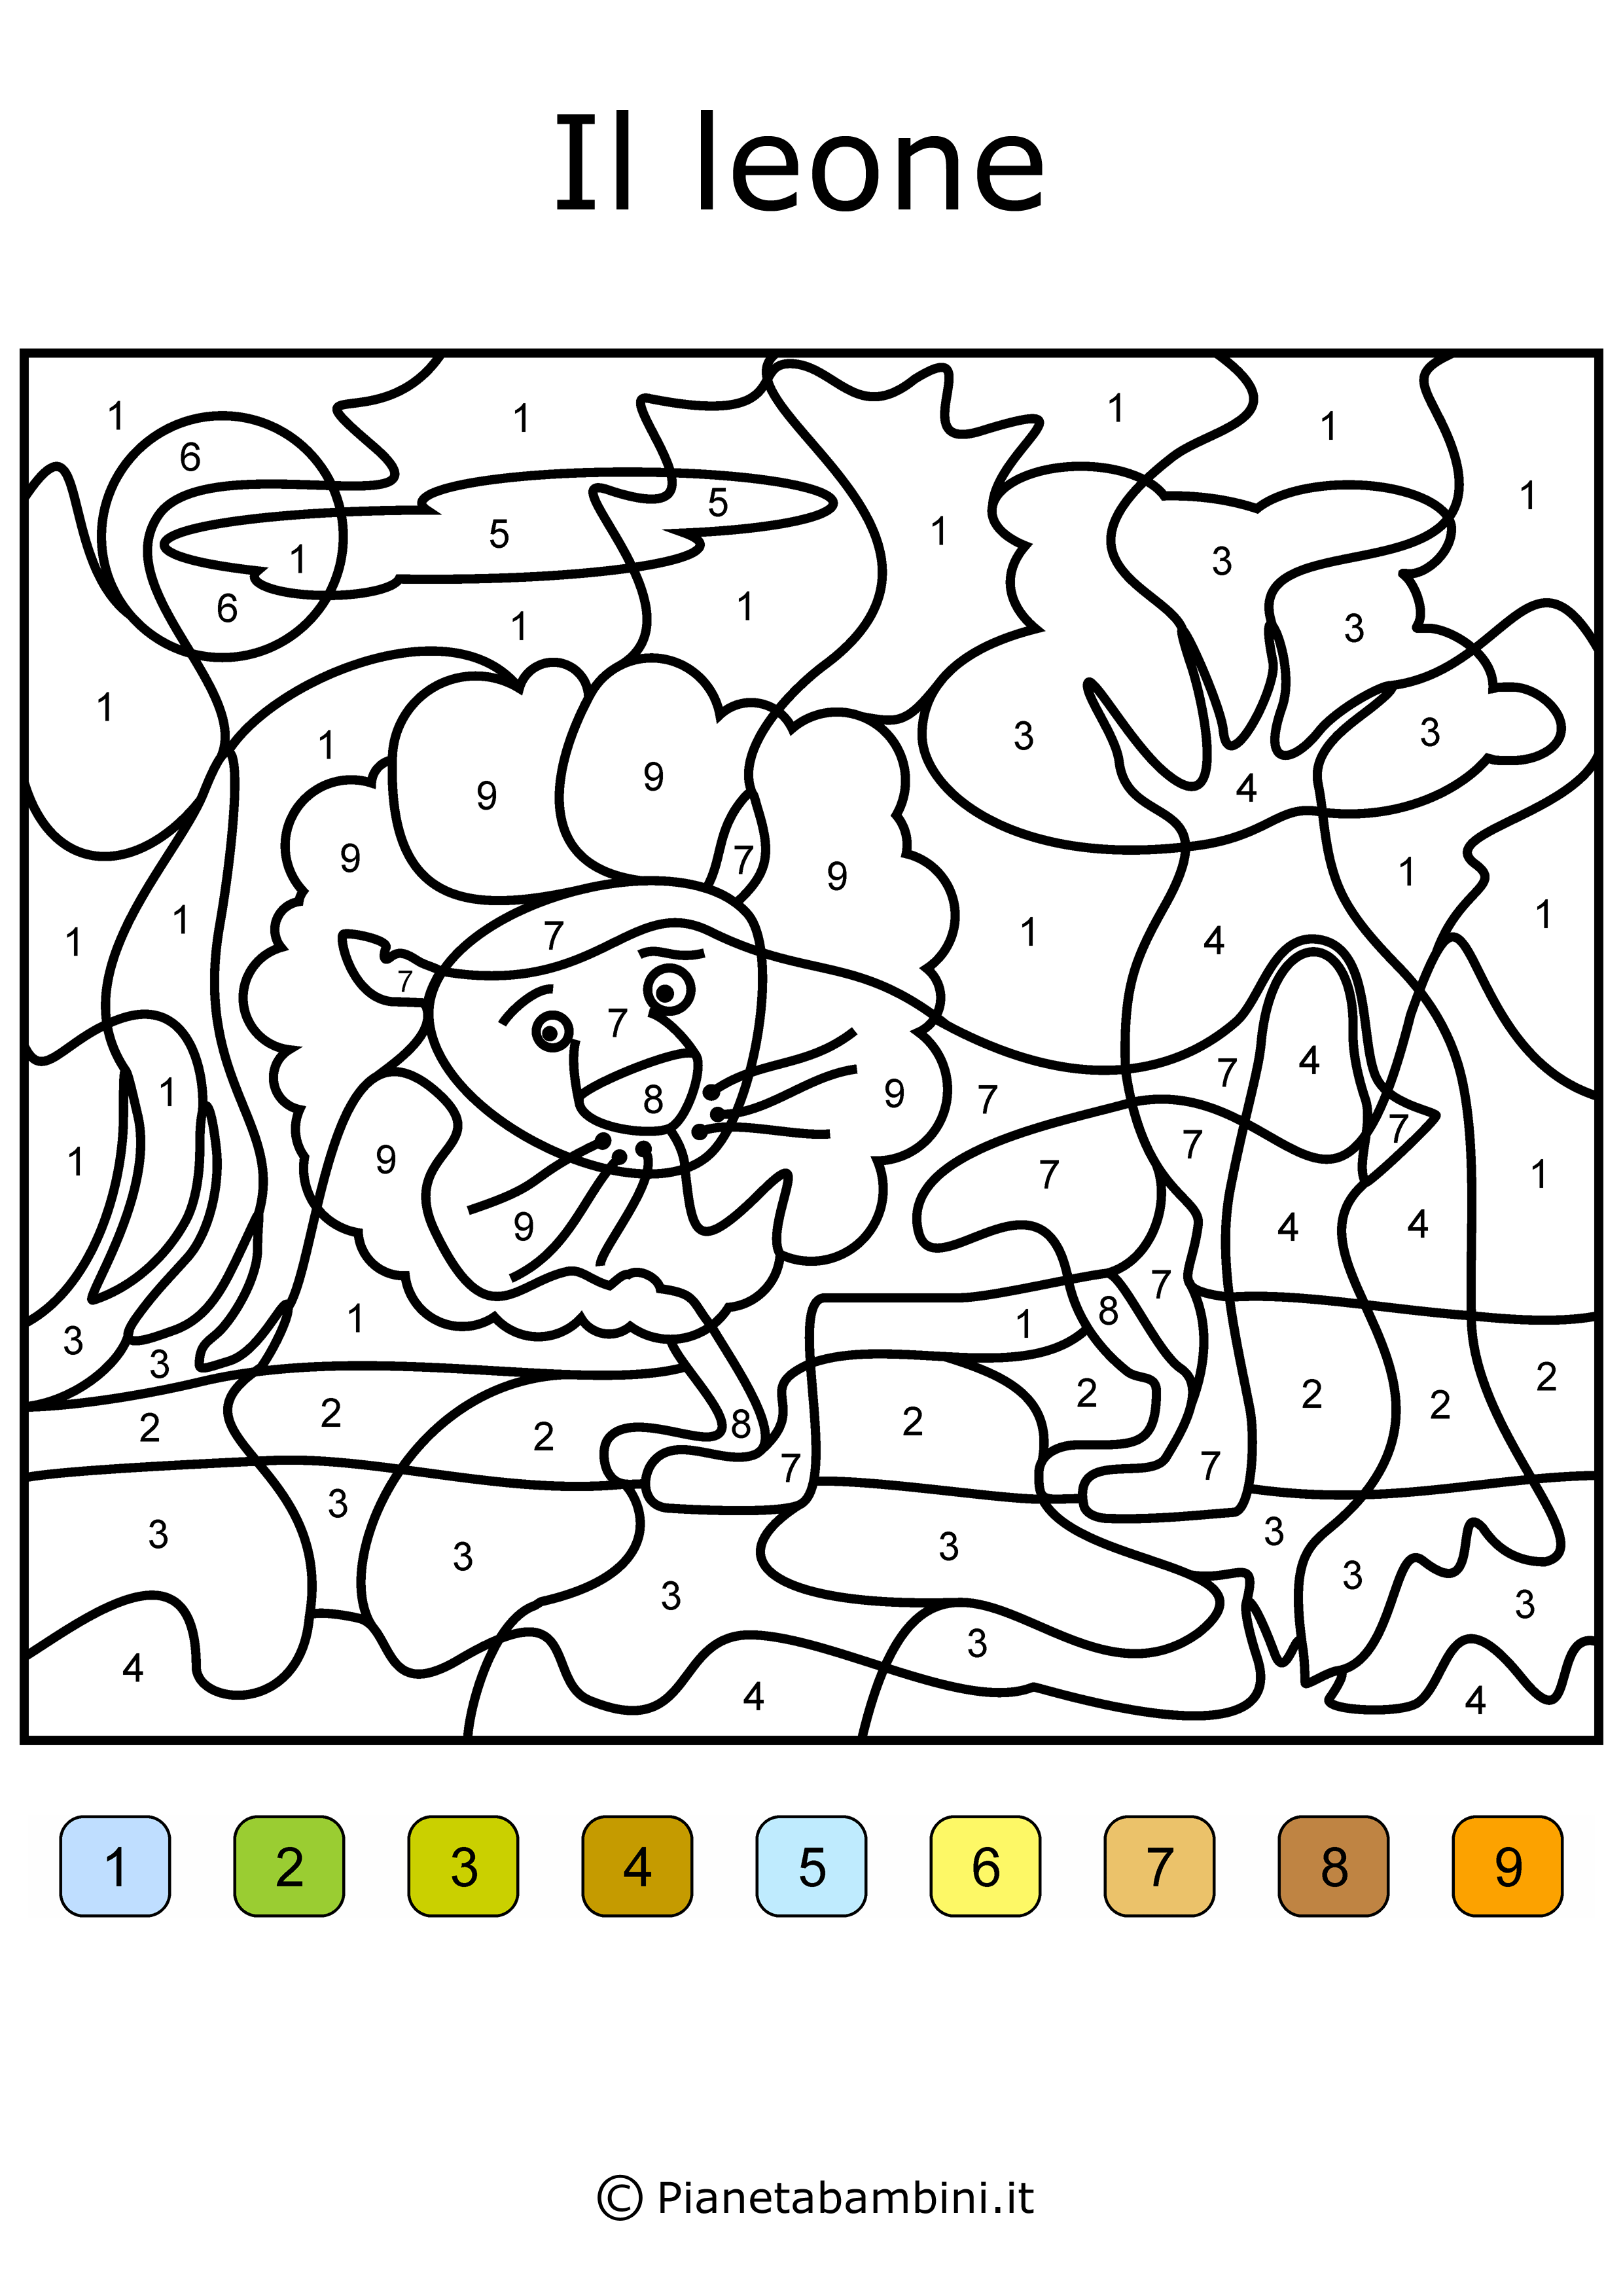 Coloring pages drawing 123 games